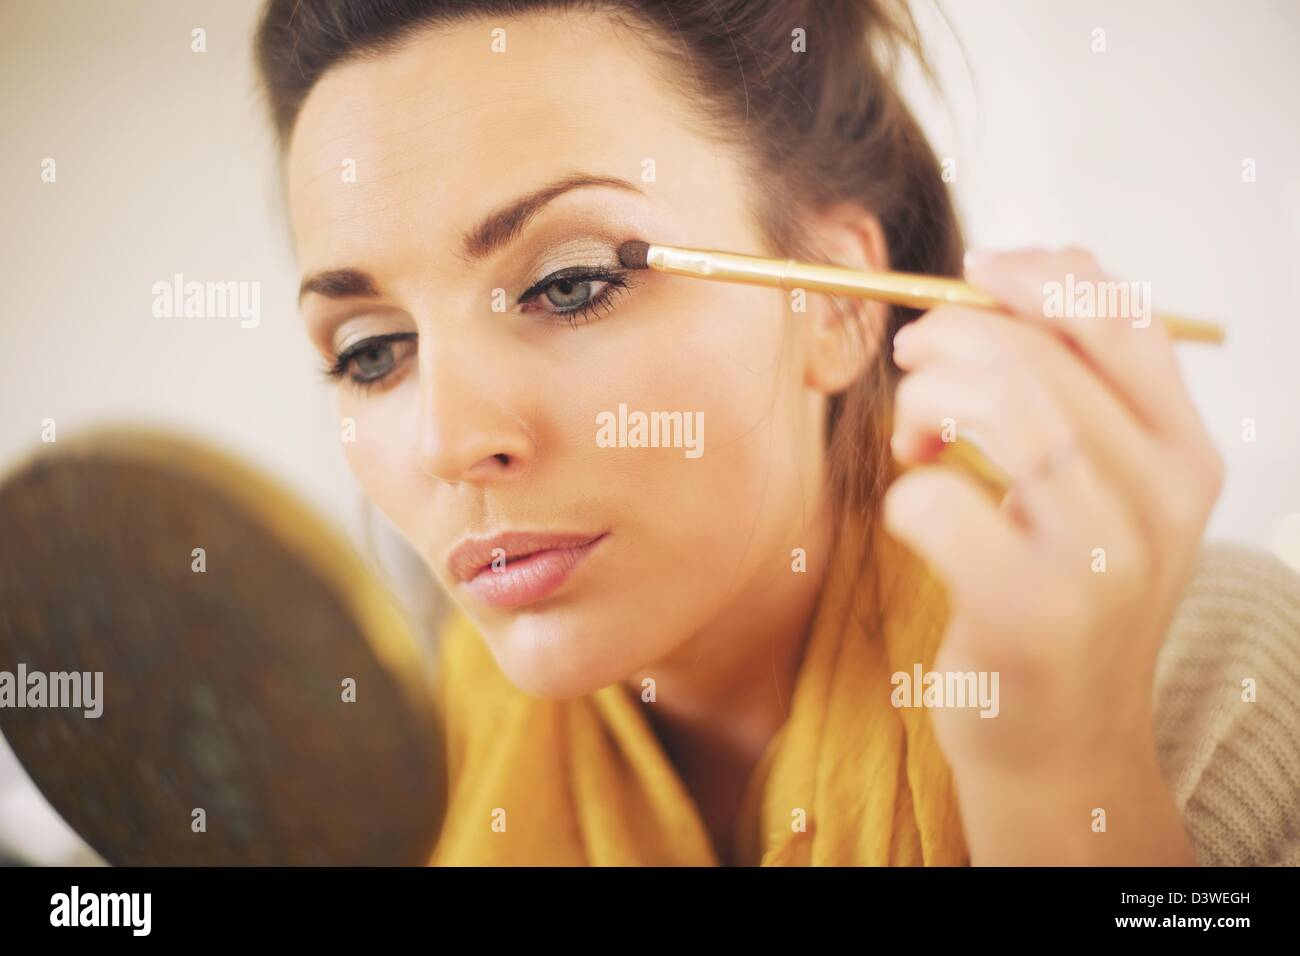 Attractive woman applying makeup while looking at the mirror - Stock Image